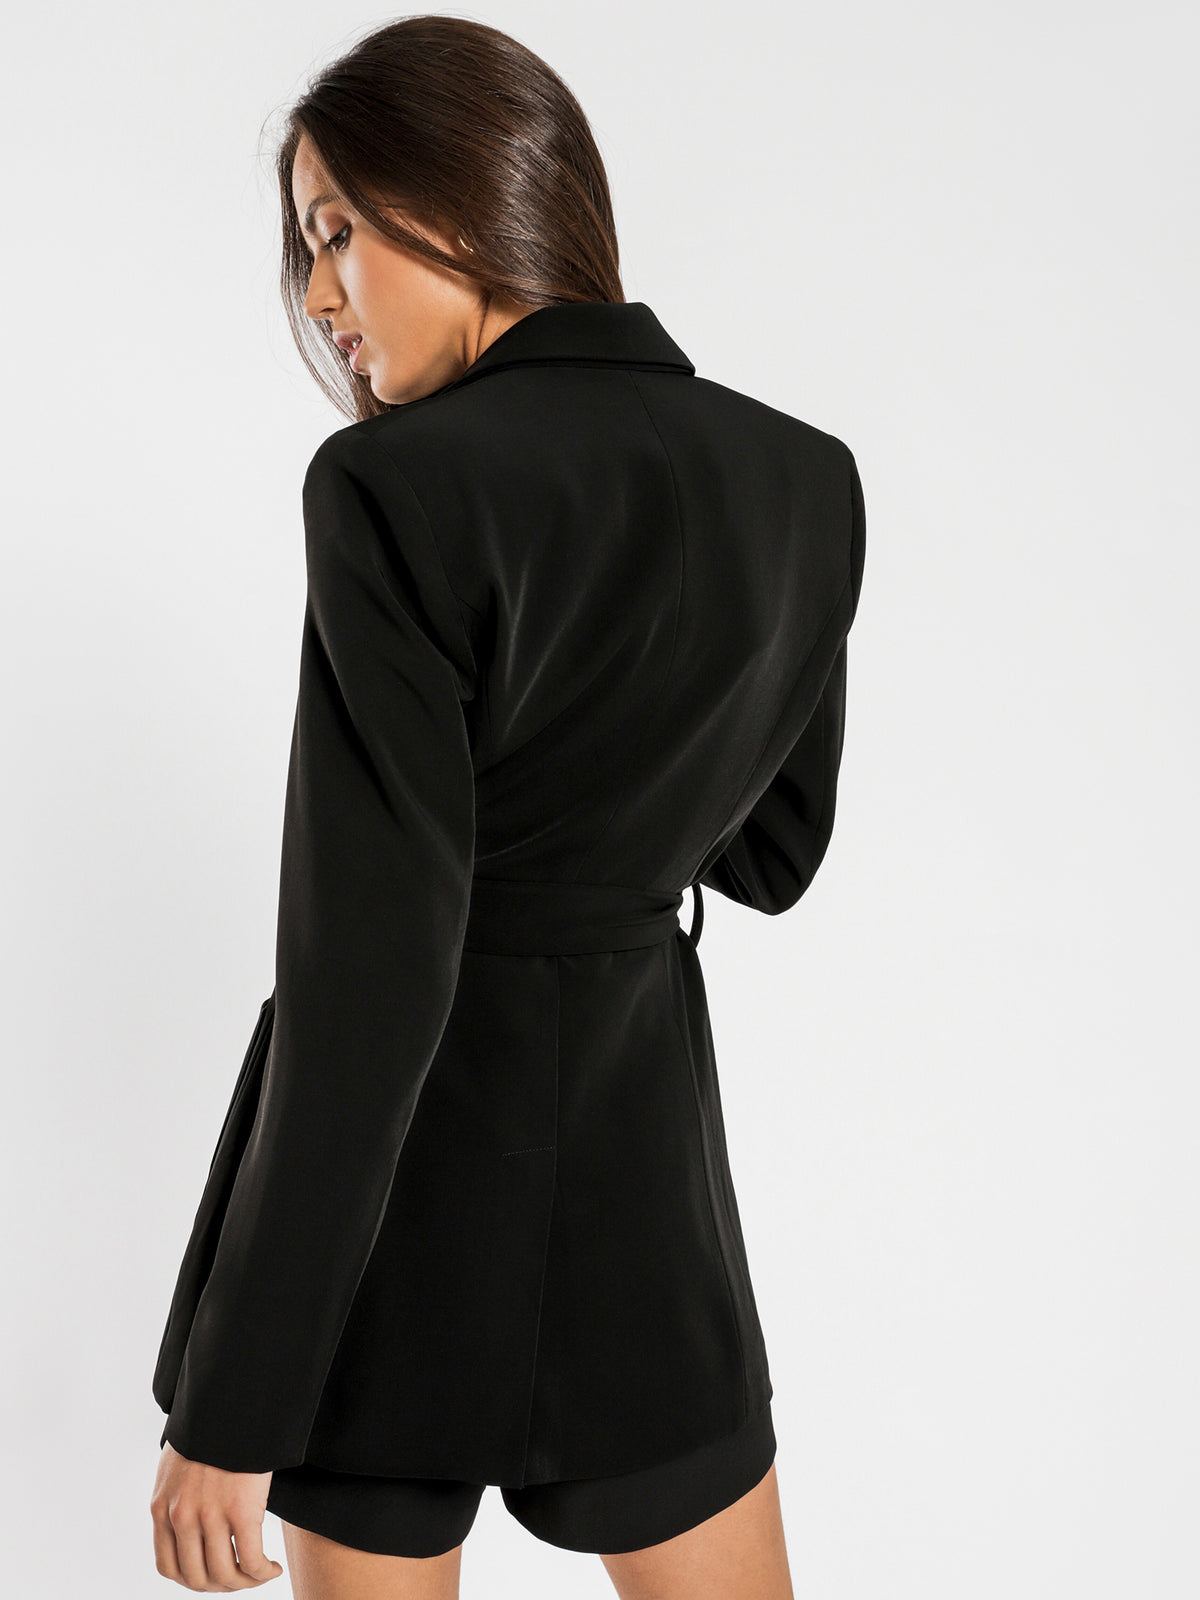 Chance Belted Blazer in Black